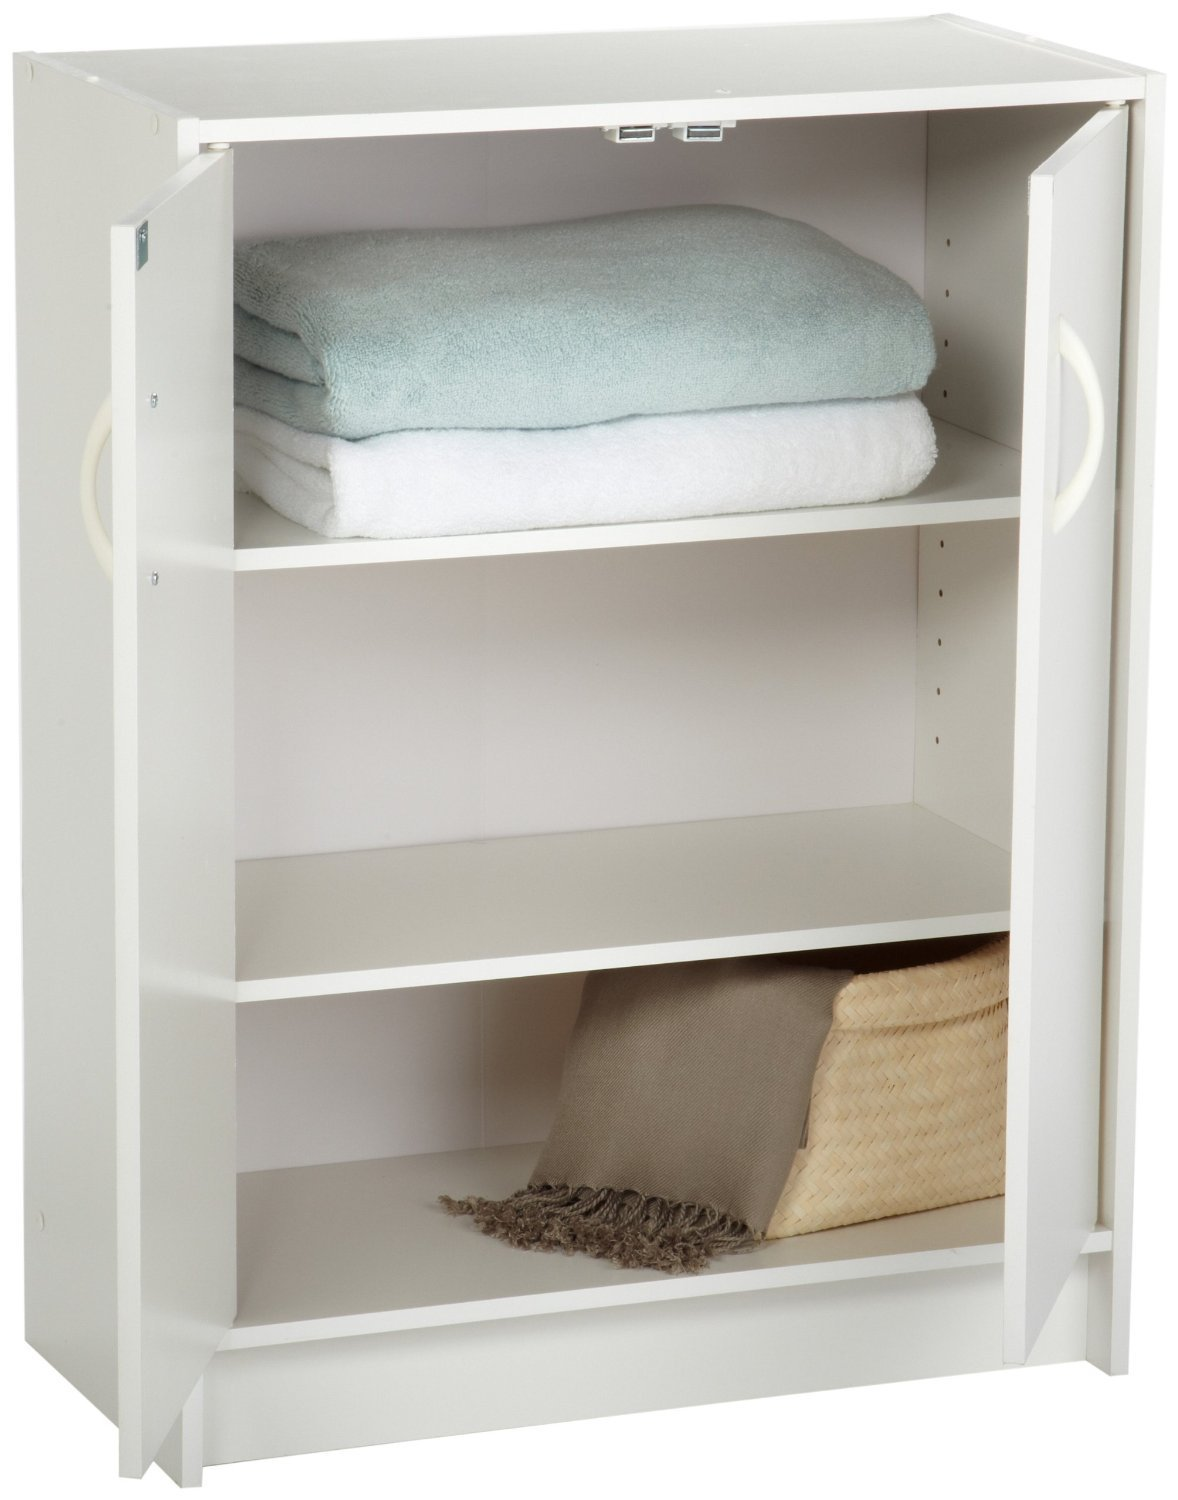 ClosetMaid 8982 Stackable 2-Door Organizer, White